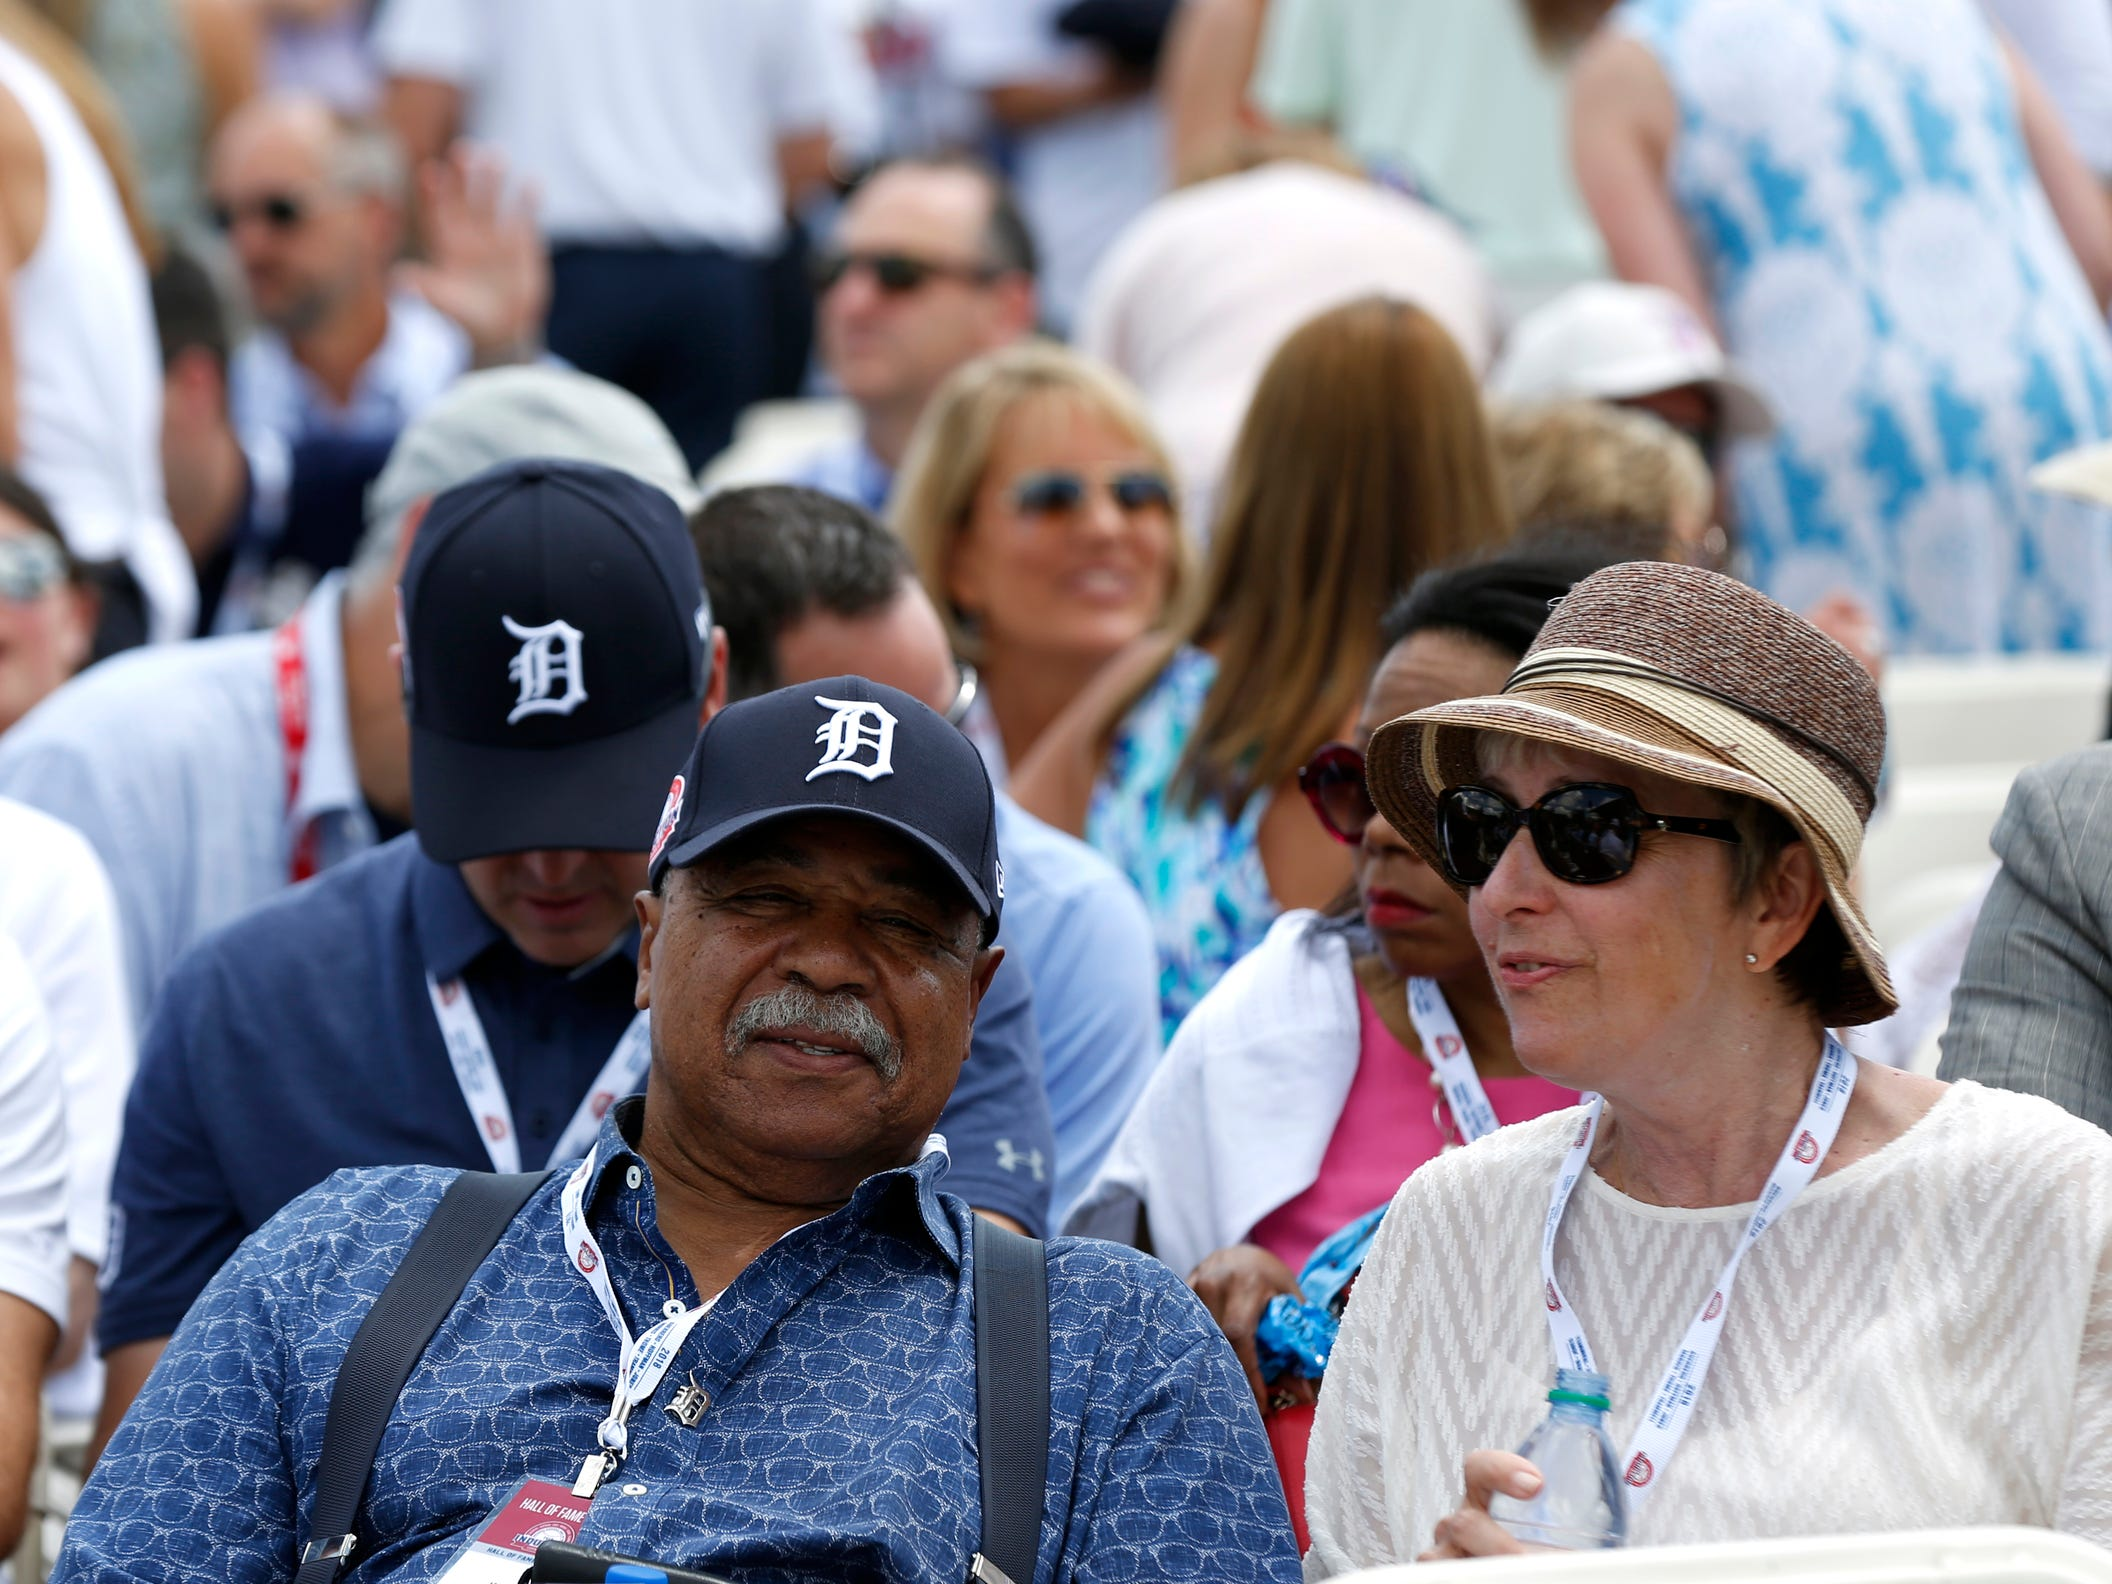 Detroit Tigers legend Willie Horton was one of many former Tigers in attendance to watch Jack Morris and Alan Trammell get inducted into the baseball hall of fame at the Clark Sports Center after the National Baseball Hall of Fame induction ceremony in Cooperstown, NY on Sunday, July 29, 2018.